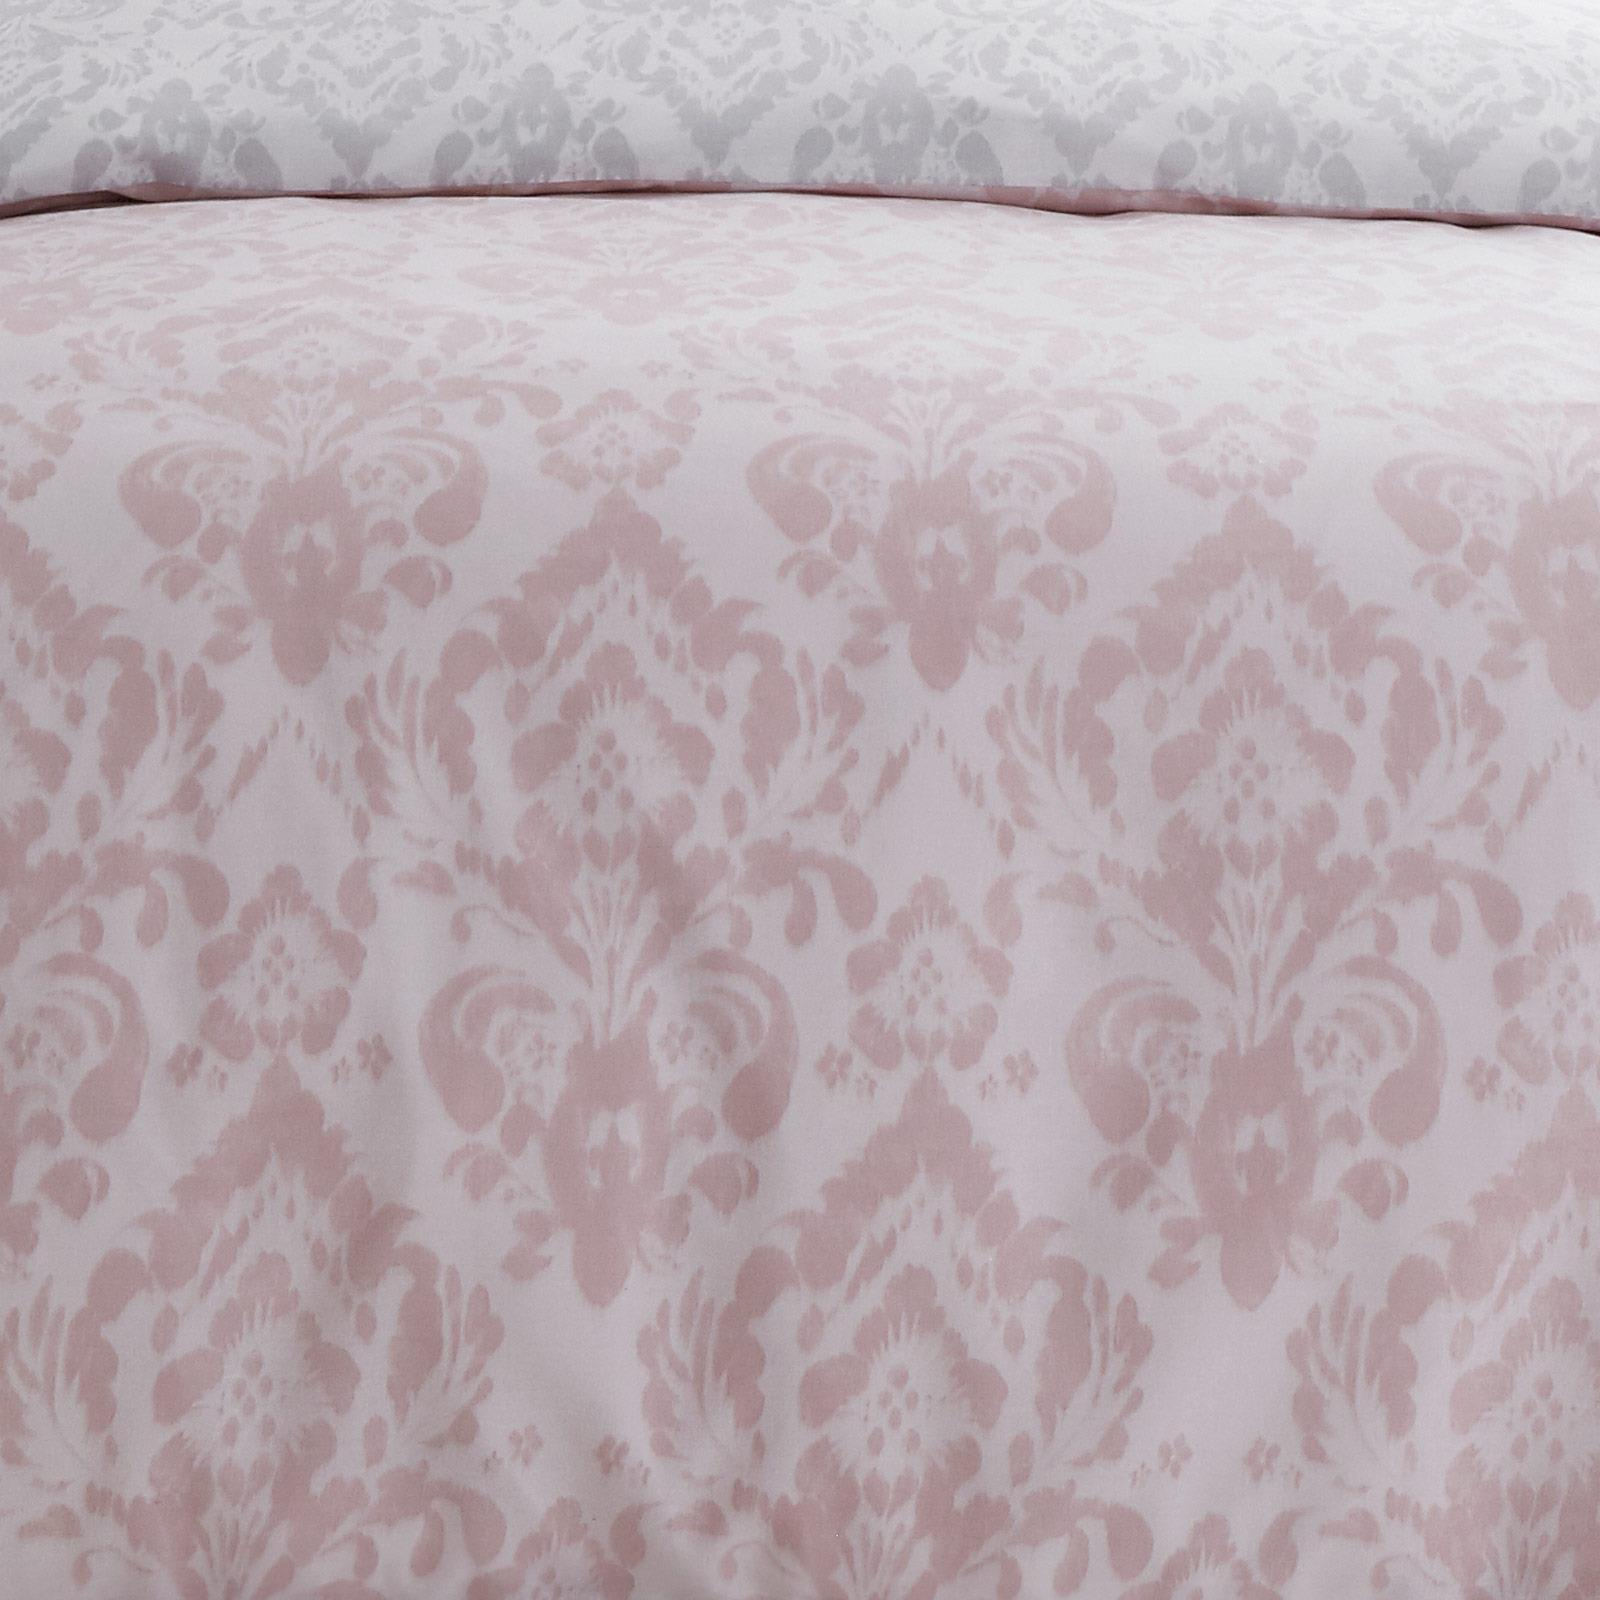 thumbnail 3 - Catherine Lansfield Damask Blush Duvet Covers Pink Grey Quilt Cover Bedding Sets